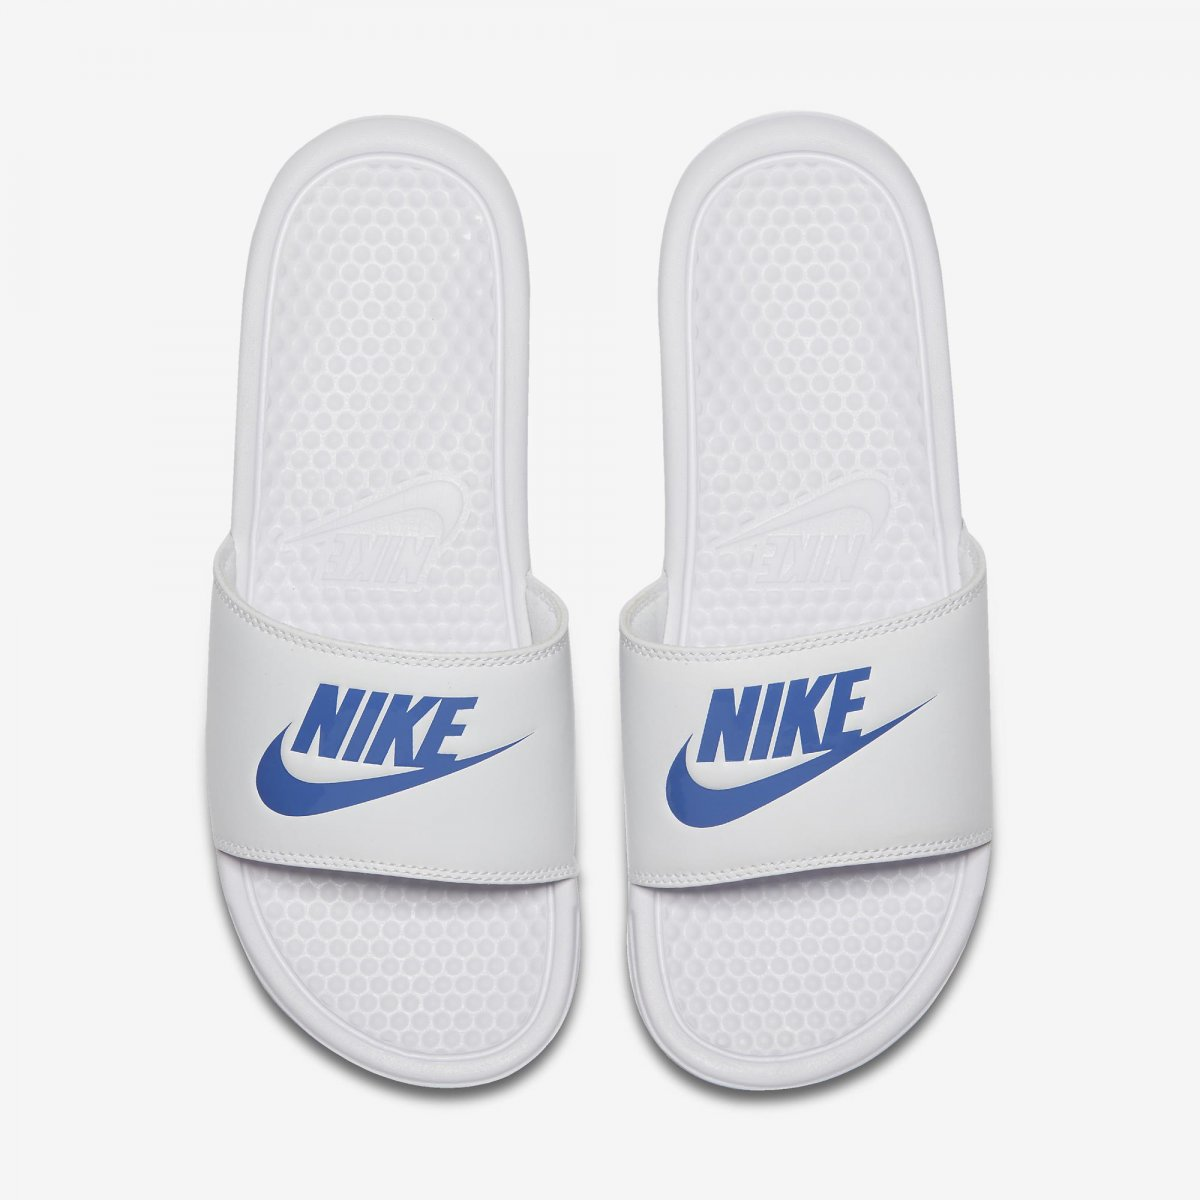 3cb685a5ea Sandália Nike Benassi Just Do It Masculino